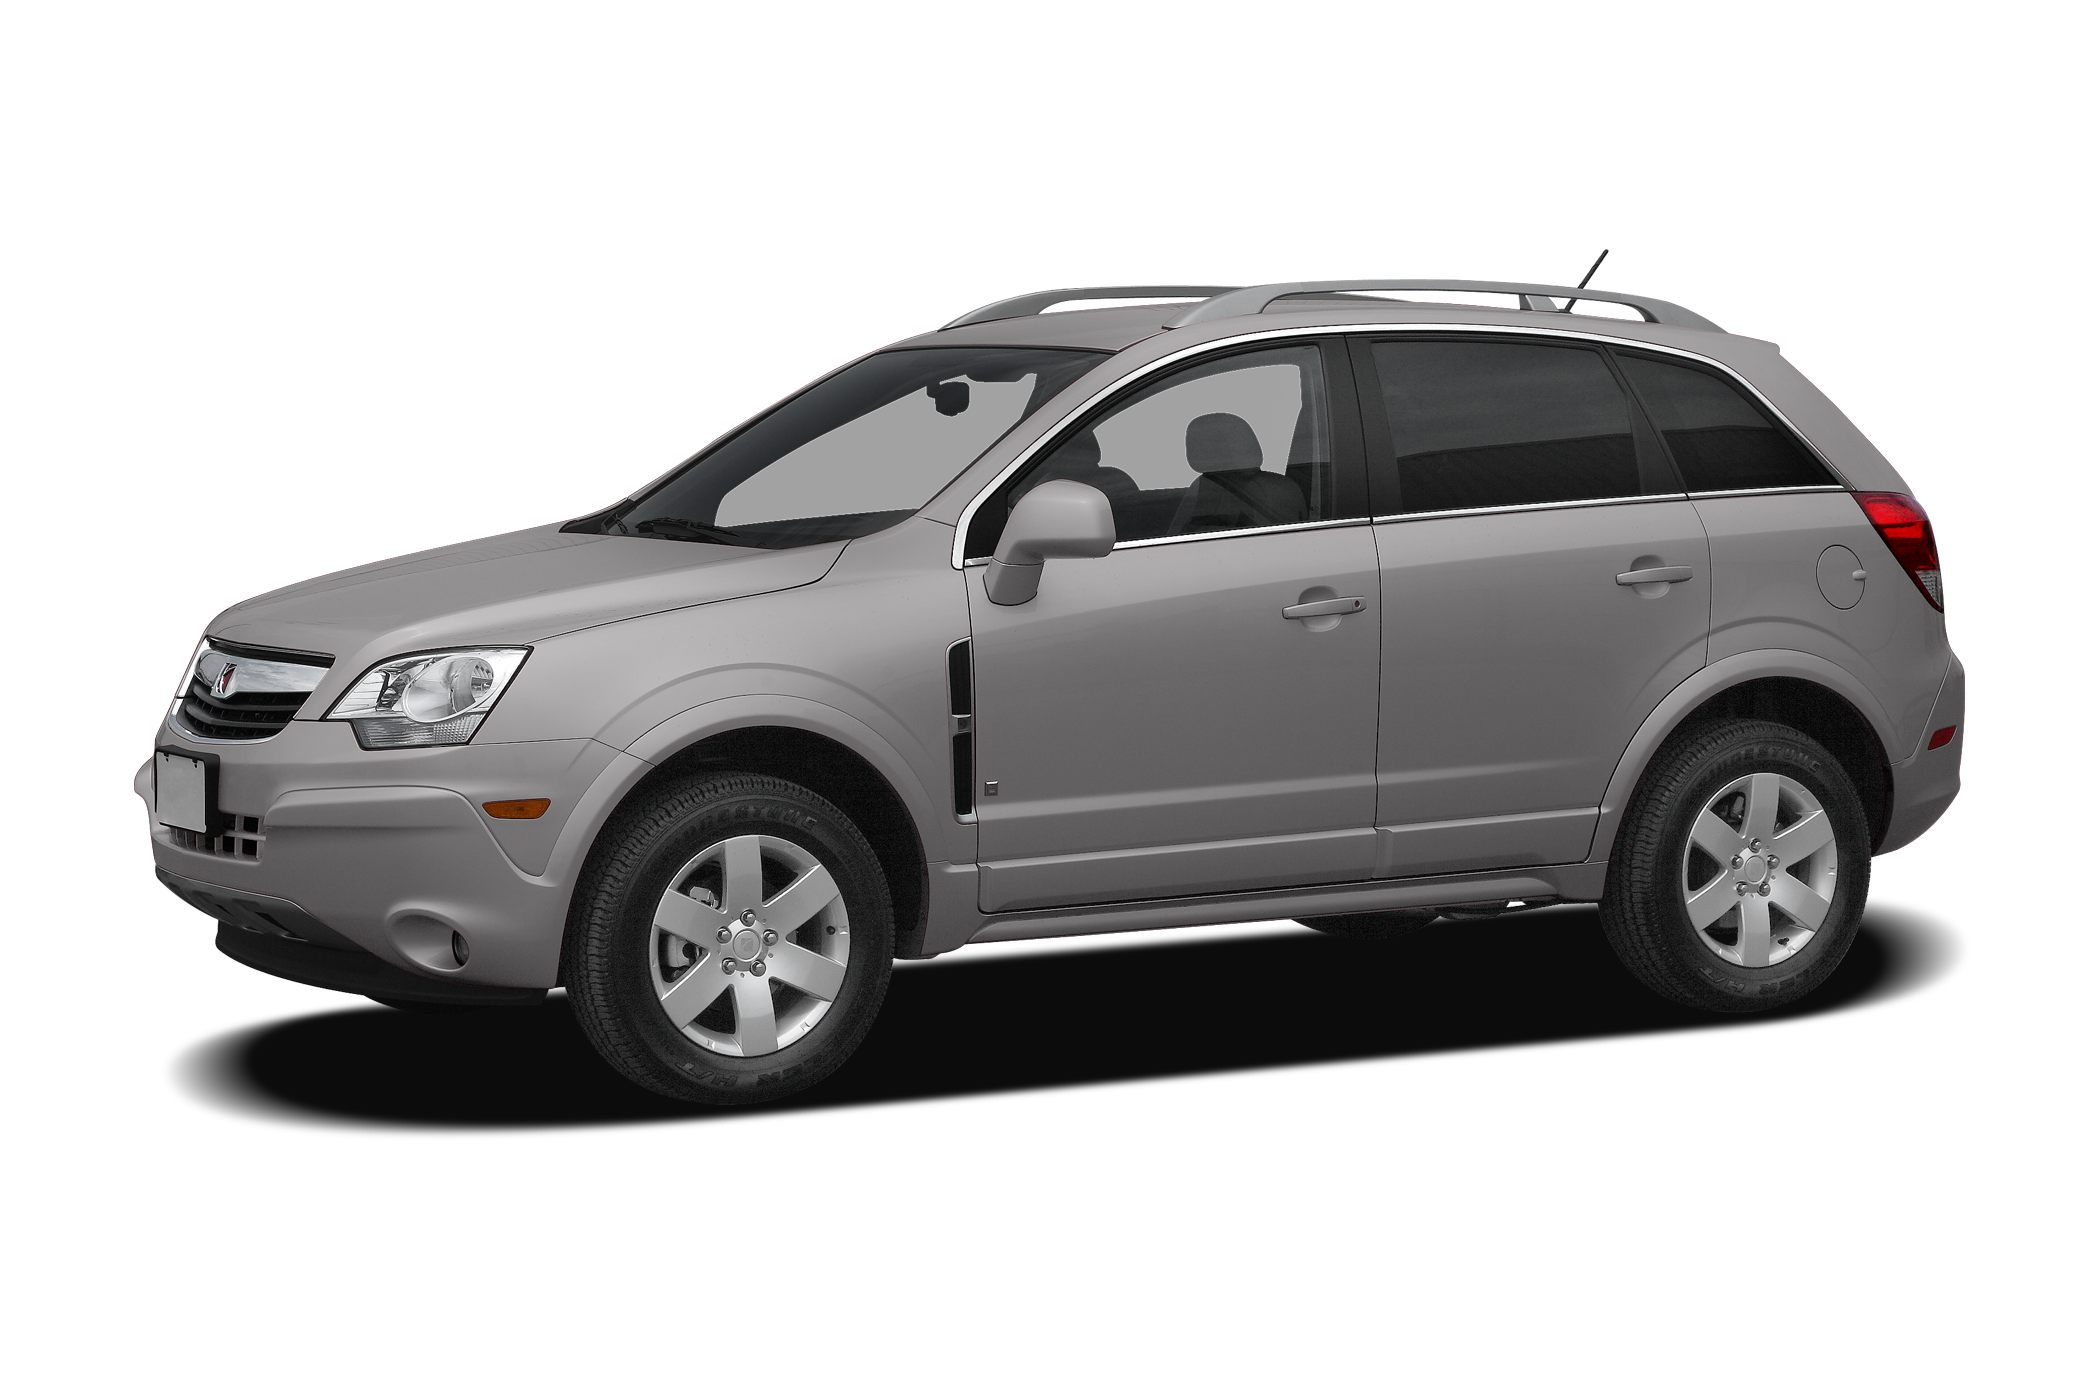 2008 Saturn VUE XE LOW MILEAGE 2008 SATURN VUE XECLEAN CAR FAXTWO OWNERFLORIDA OWNEDCheck